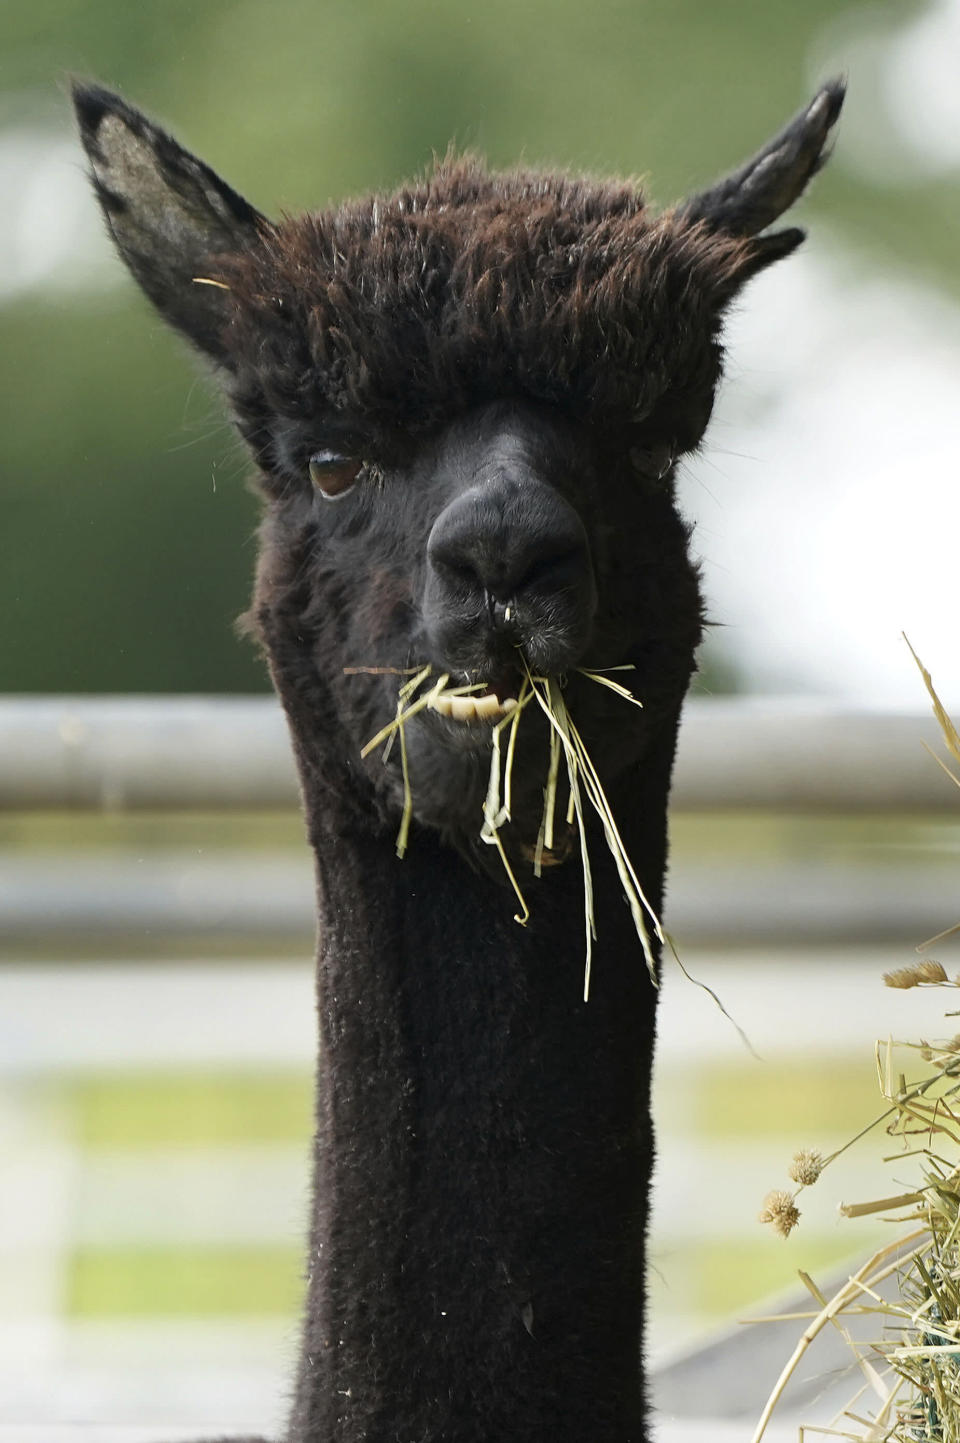 Geronimo the alpaca at Shepherds Close Farm in Wooton Under Edge village in England, Friday Aug. 27, 2021. Geronimo has twice tested positive for bovine tuberculosis and the government Department for Environment, Food and Rural Affairs (Defra) has ordered Geronimo to be destroyed, but owner Helen Macdonald believes the tests are returning false positives. (Andrew Matthews/PA via AP)